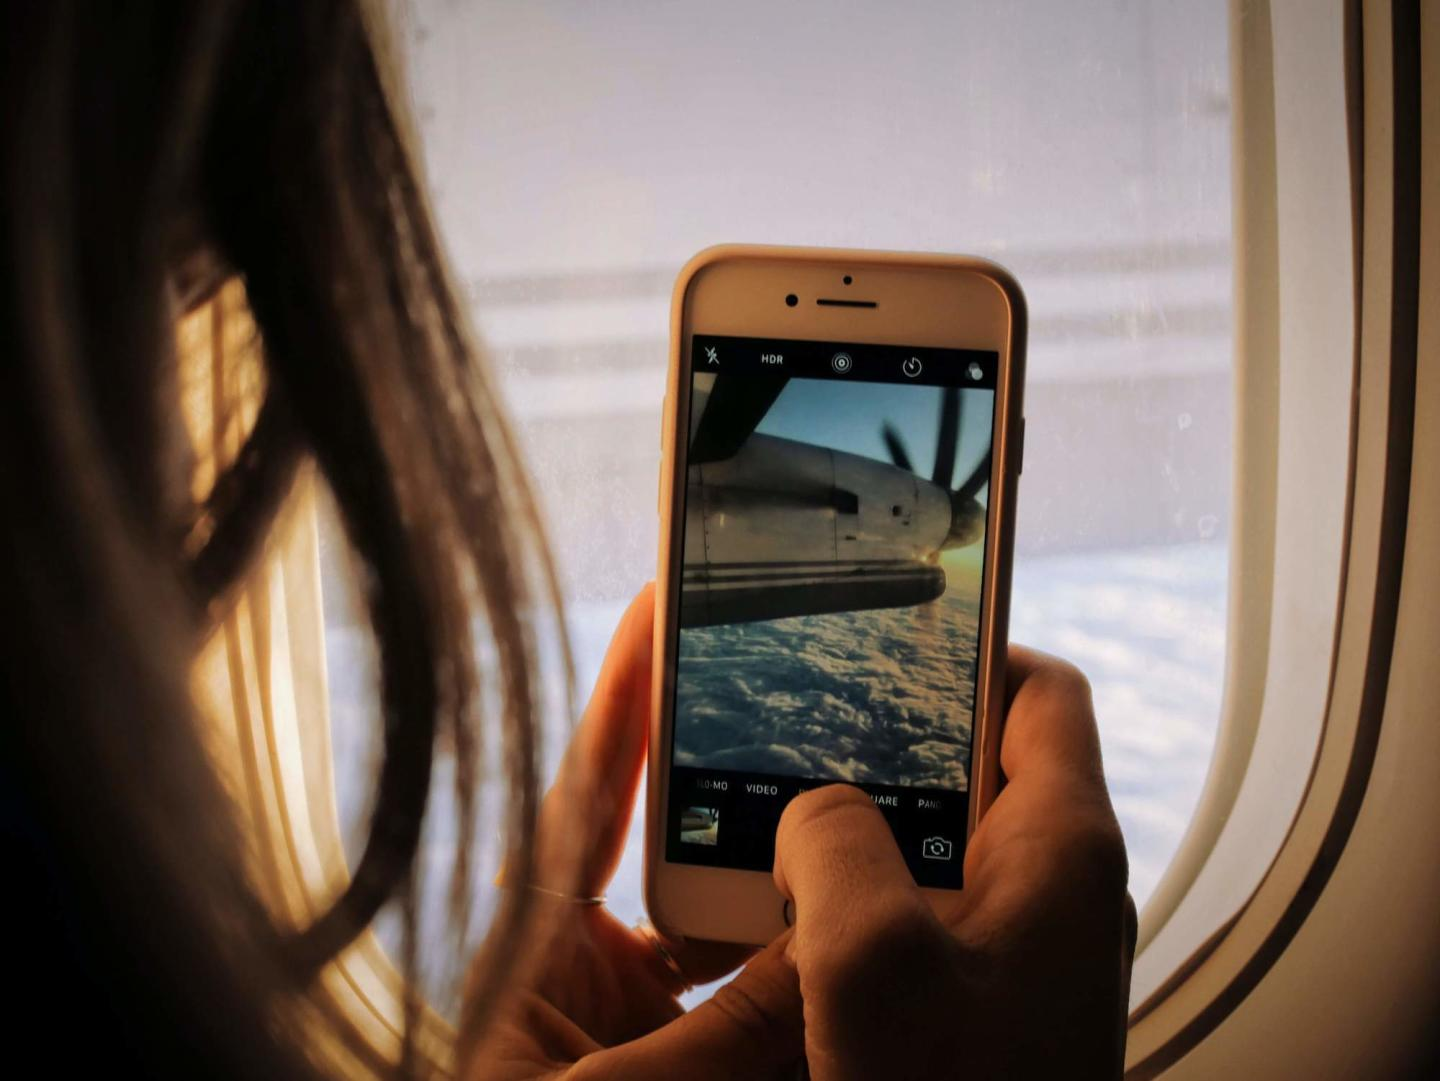 a girl is in a plane taking a photo on her phone